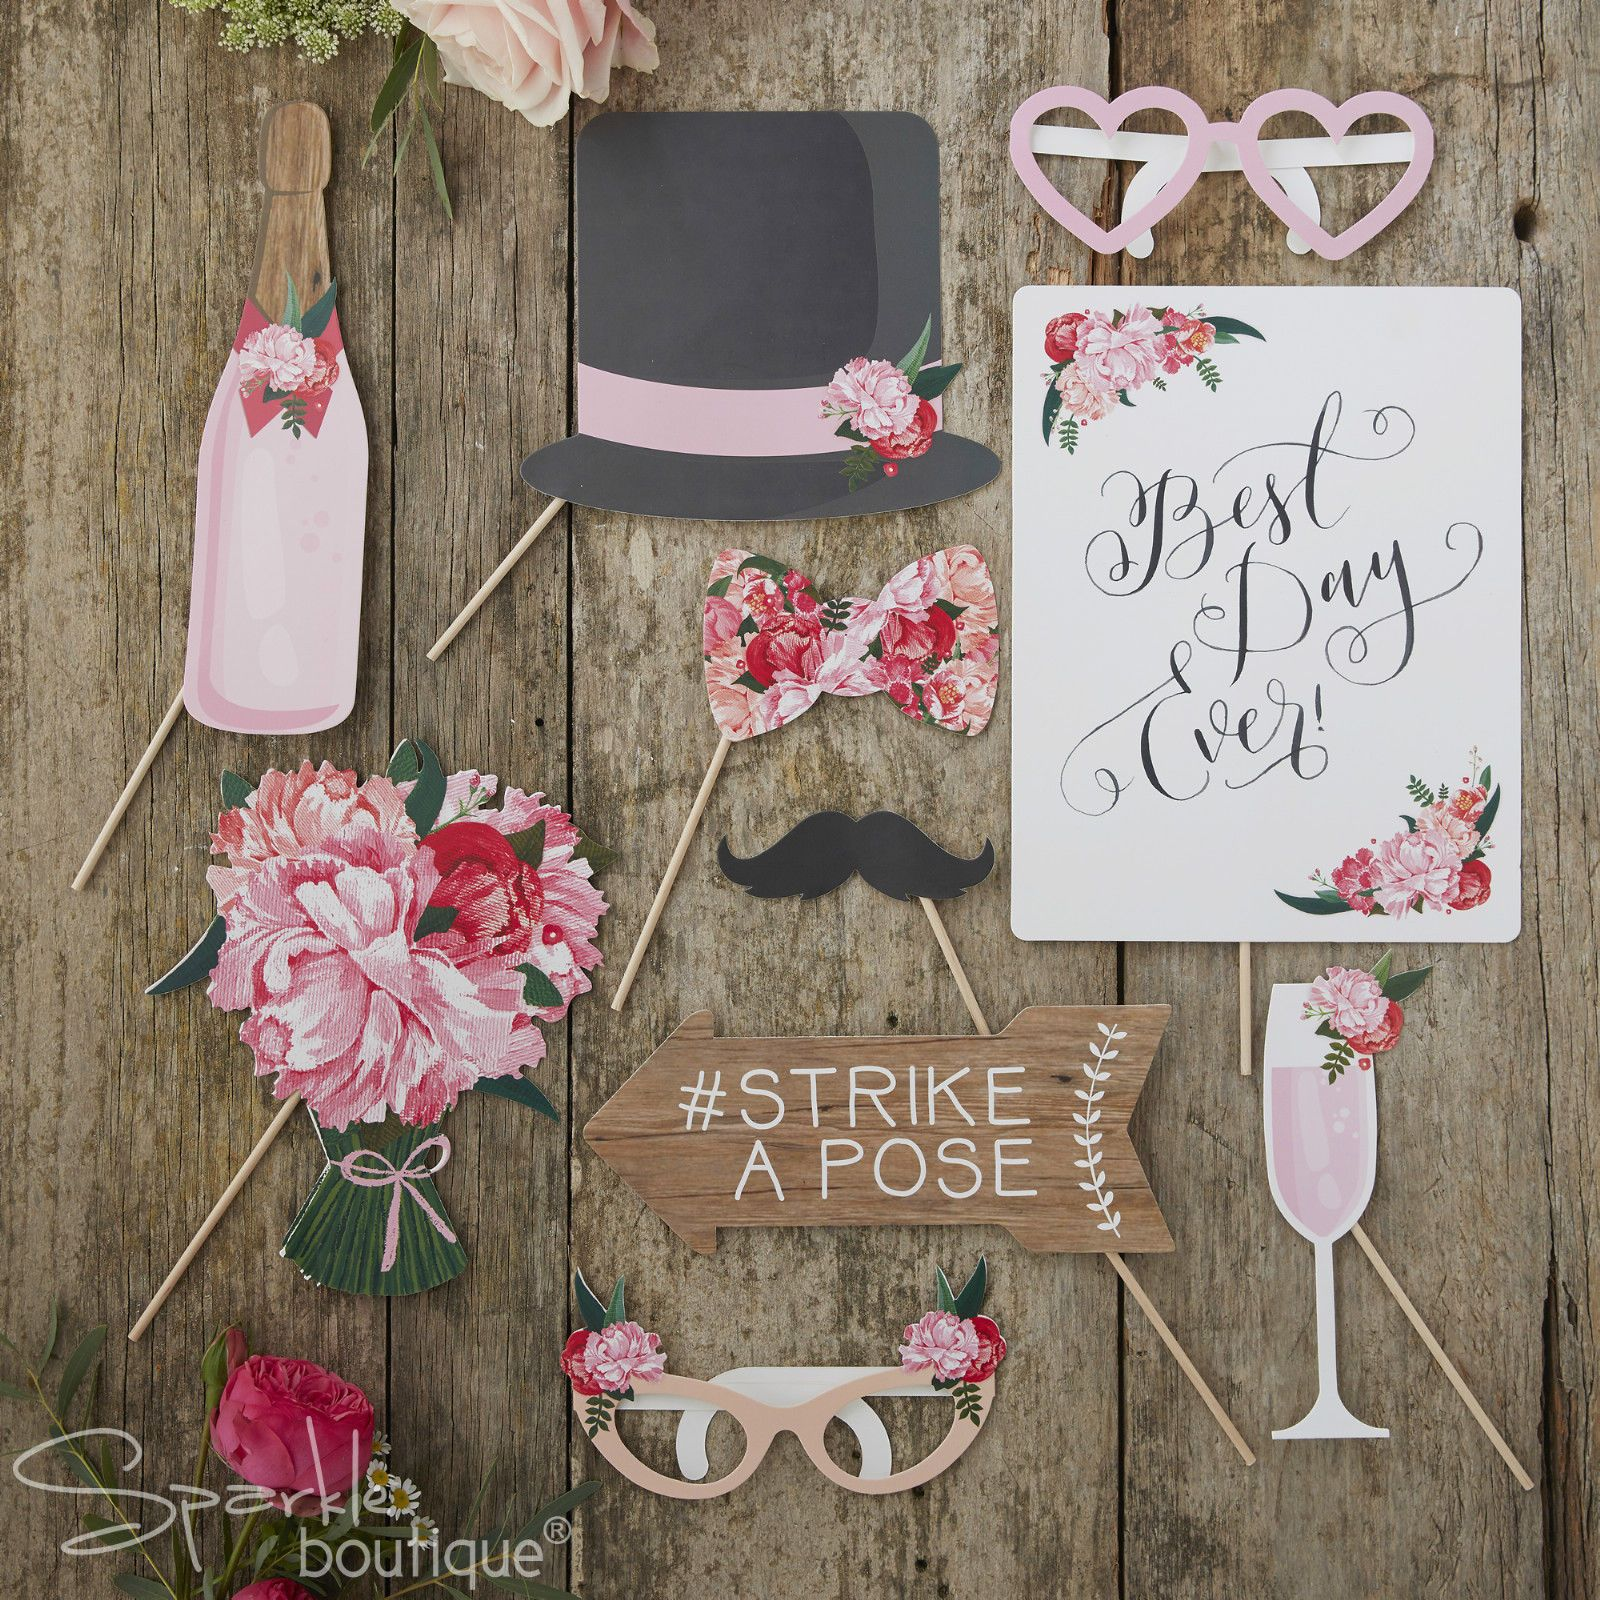 Boho wedding photo booth props rustic vintage selfie kit boho wedding photo booth props rustic vintage selfie kit photobooth signs ebay junglespirit Image collections